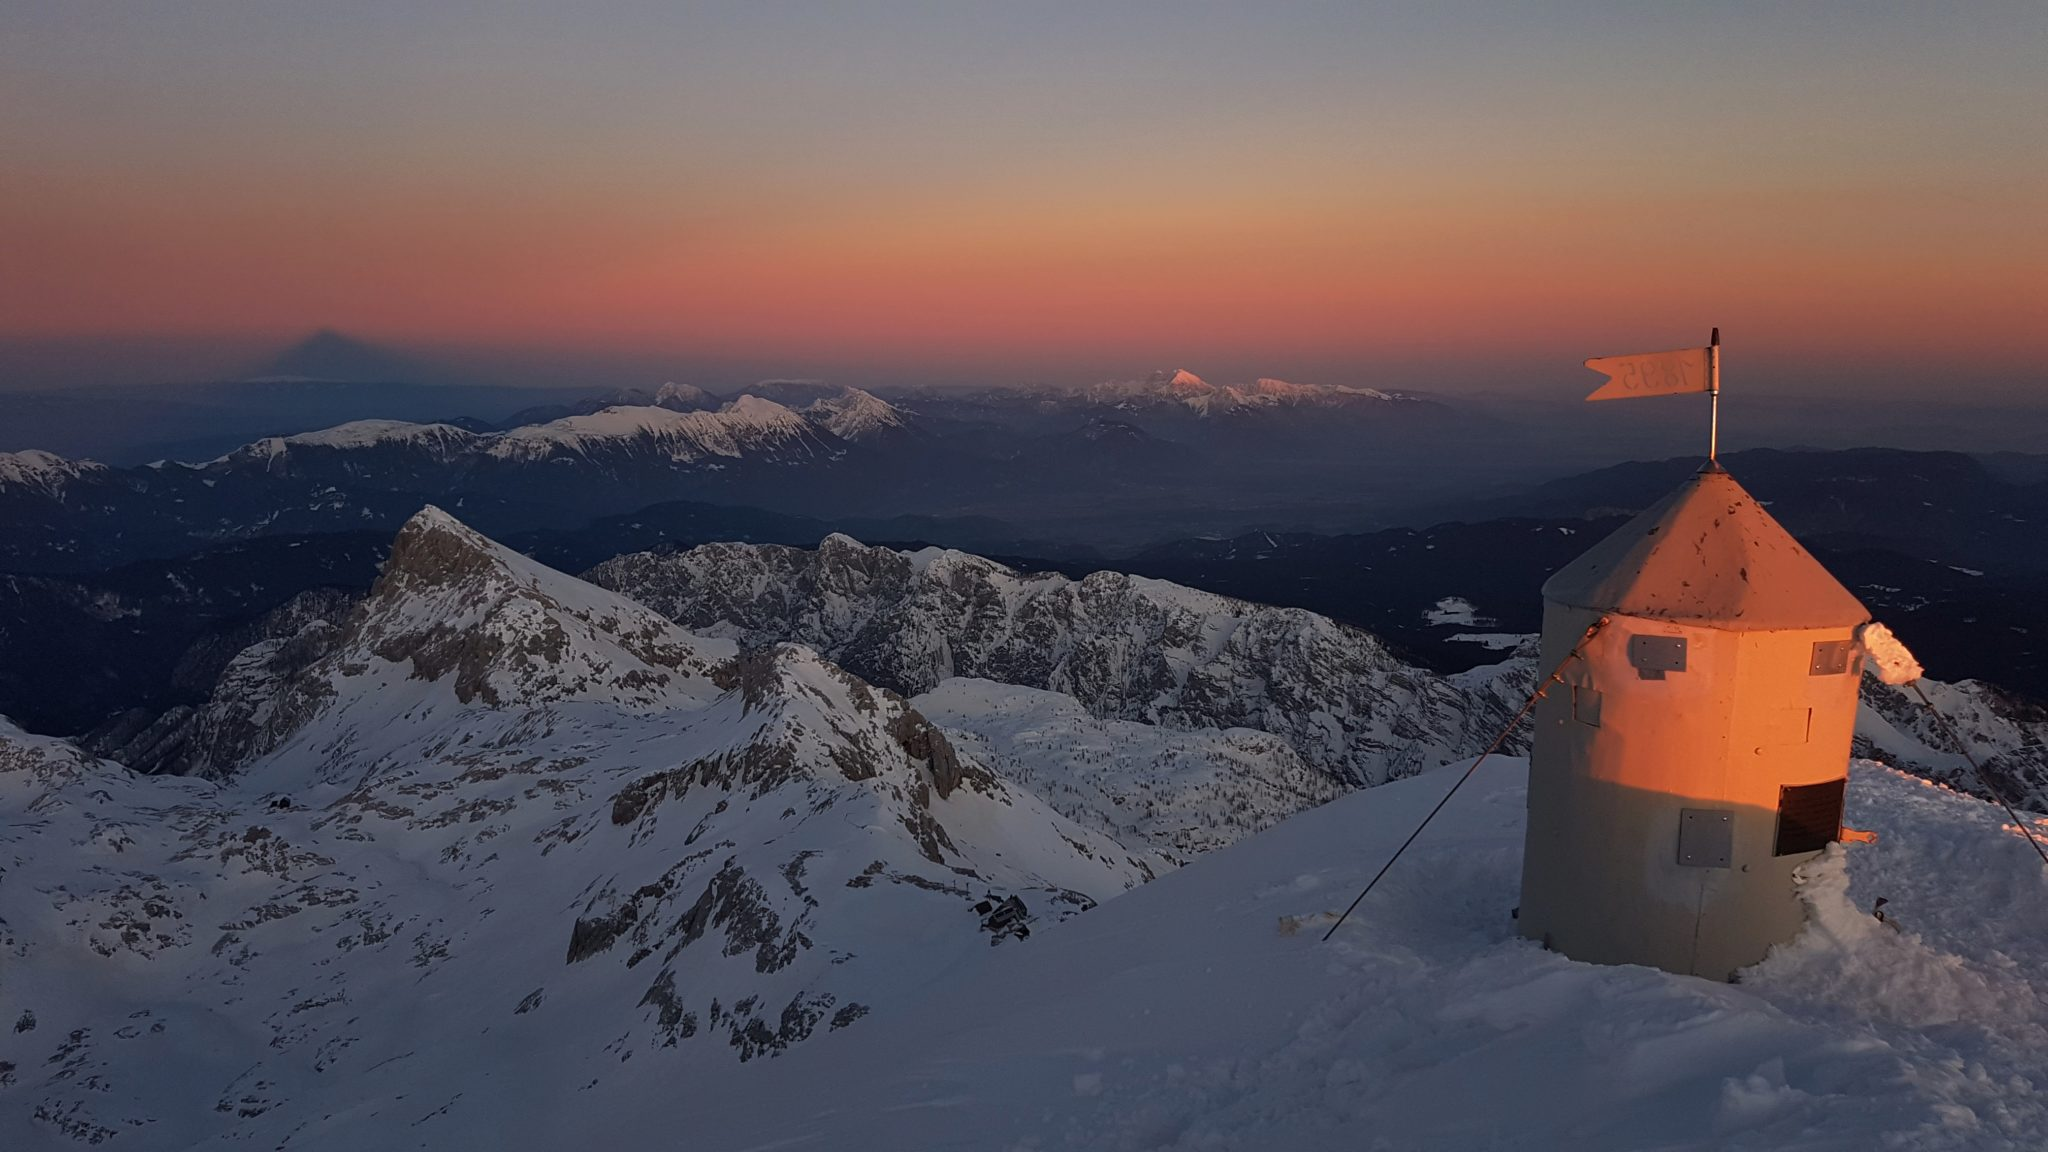 The Aljaž Tower on the Triglav peak, sunset, Julian Alps, Slovenia